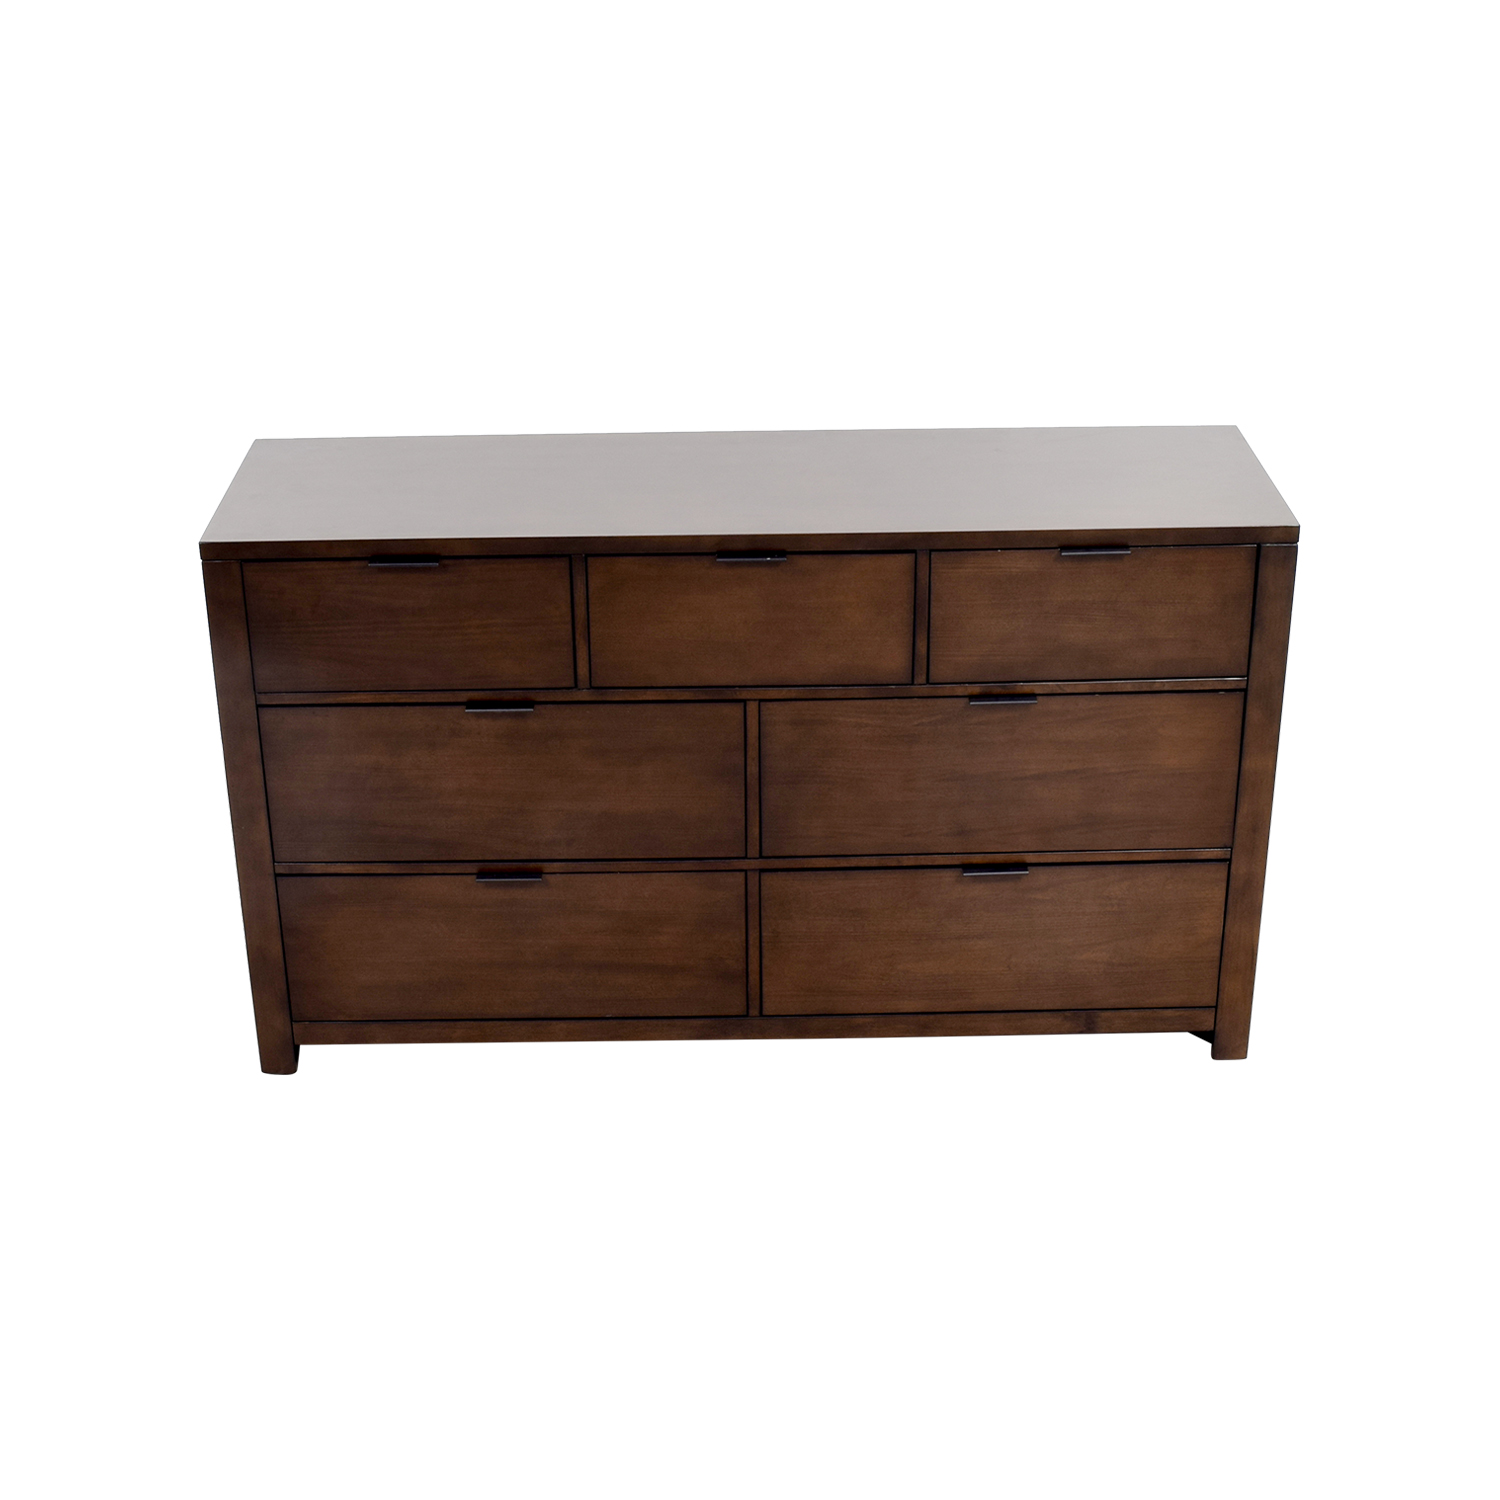 Macys Tribeca Seven-Drawer Dresser sale